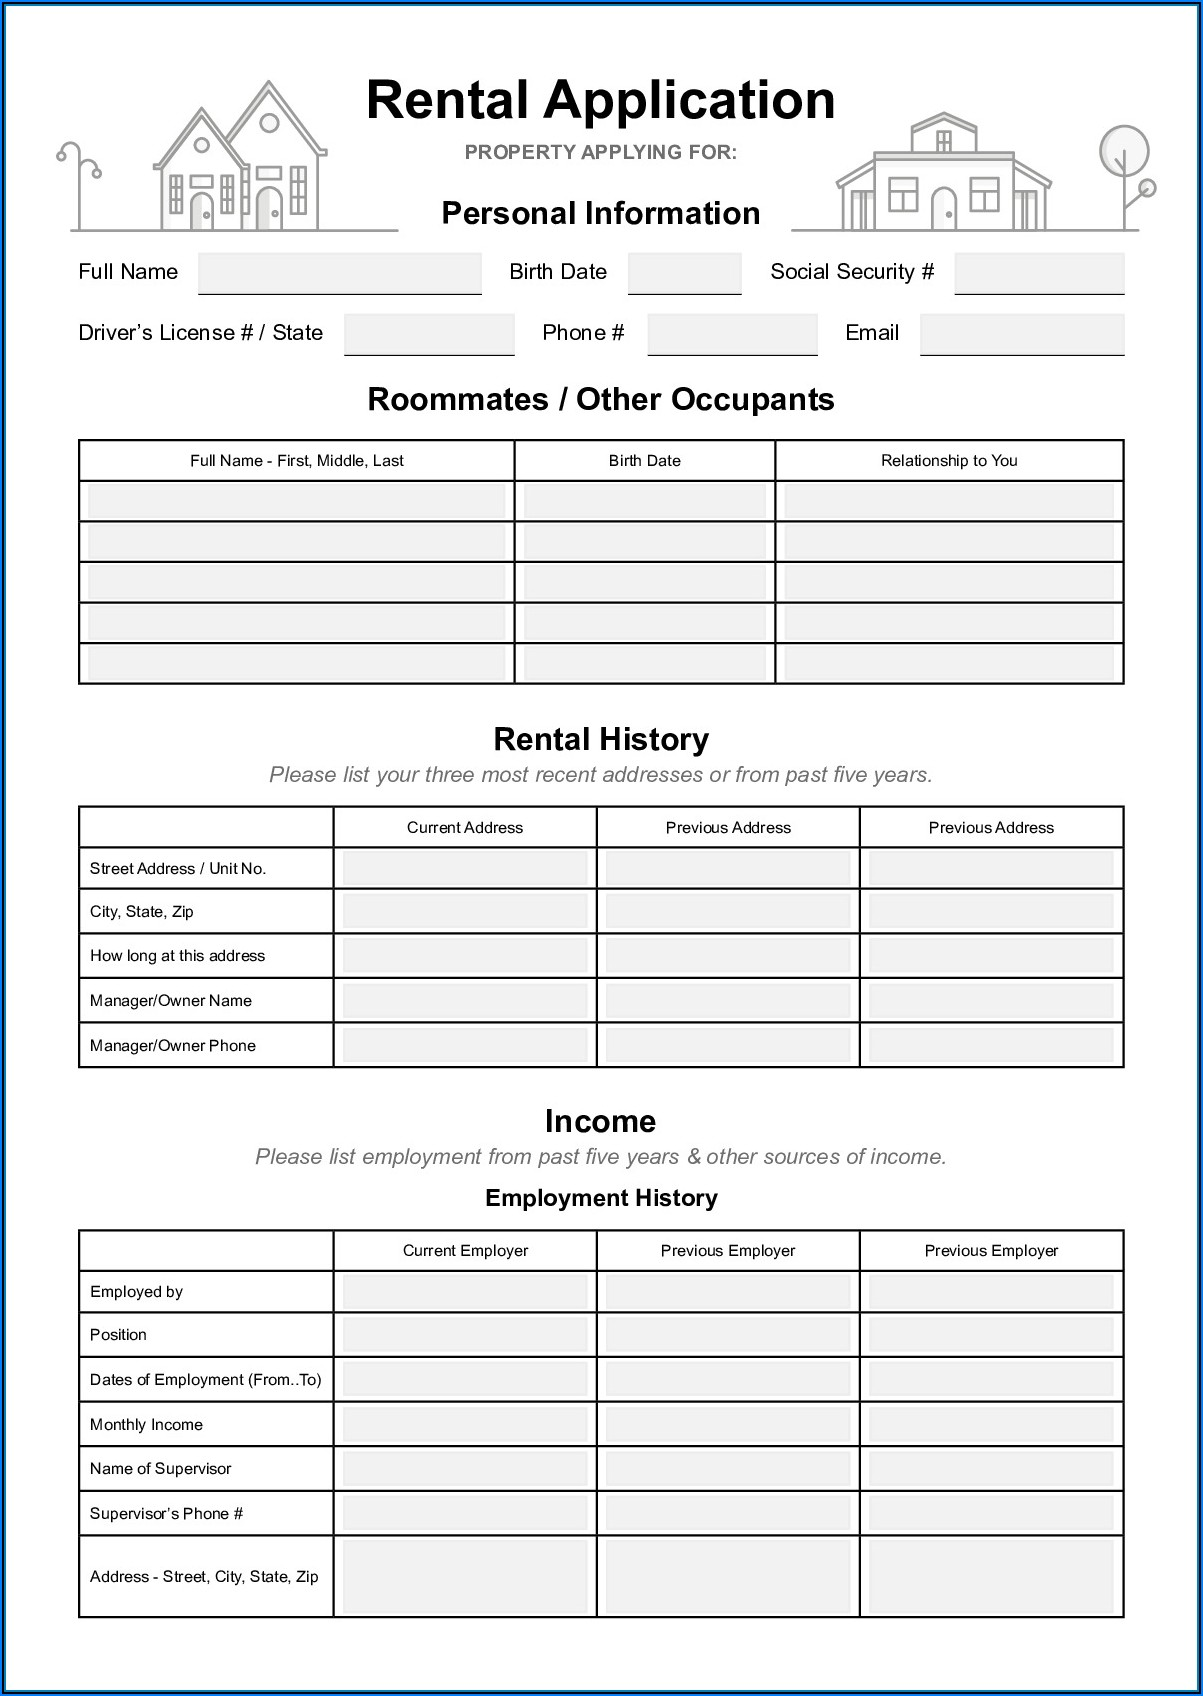 California Housing Rental Application Form